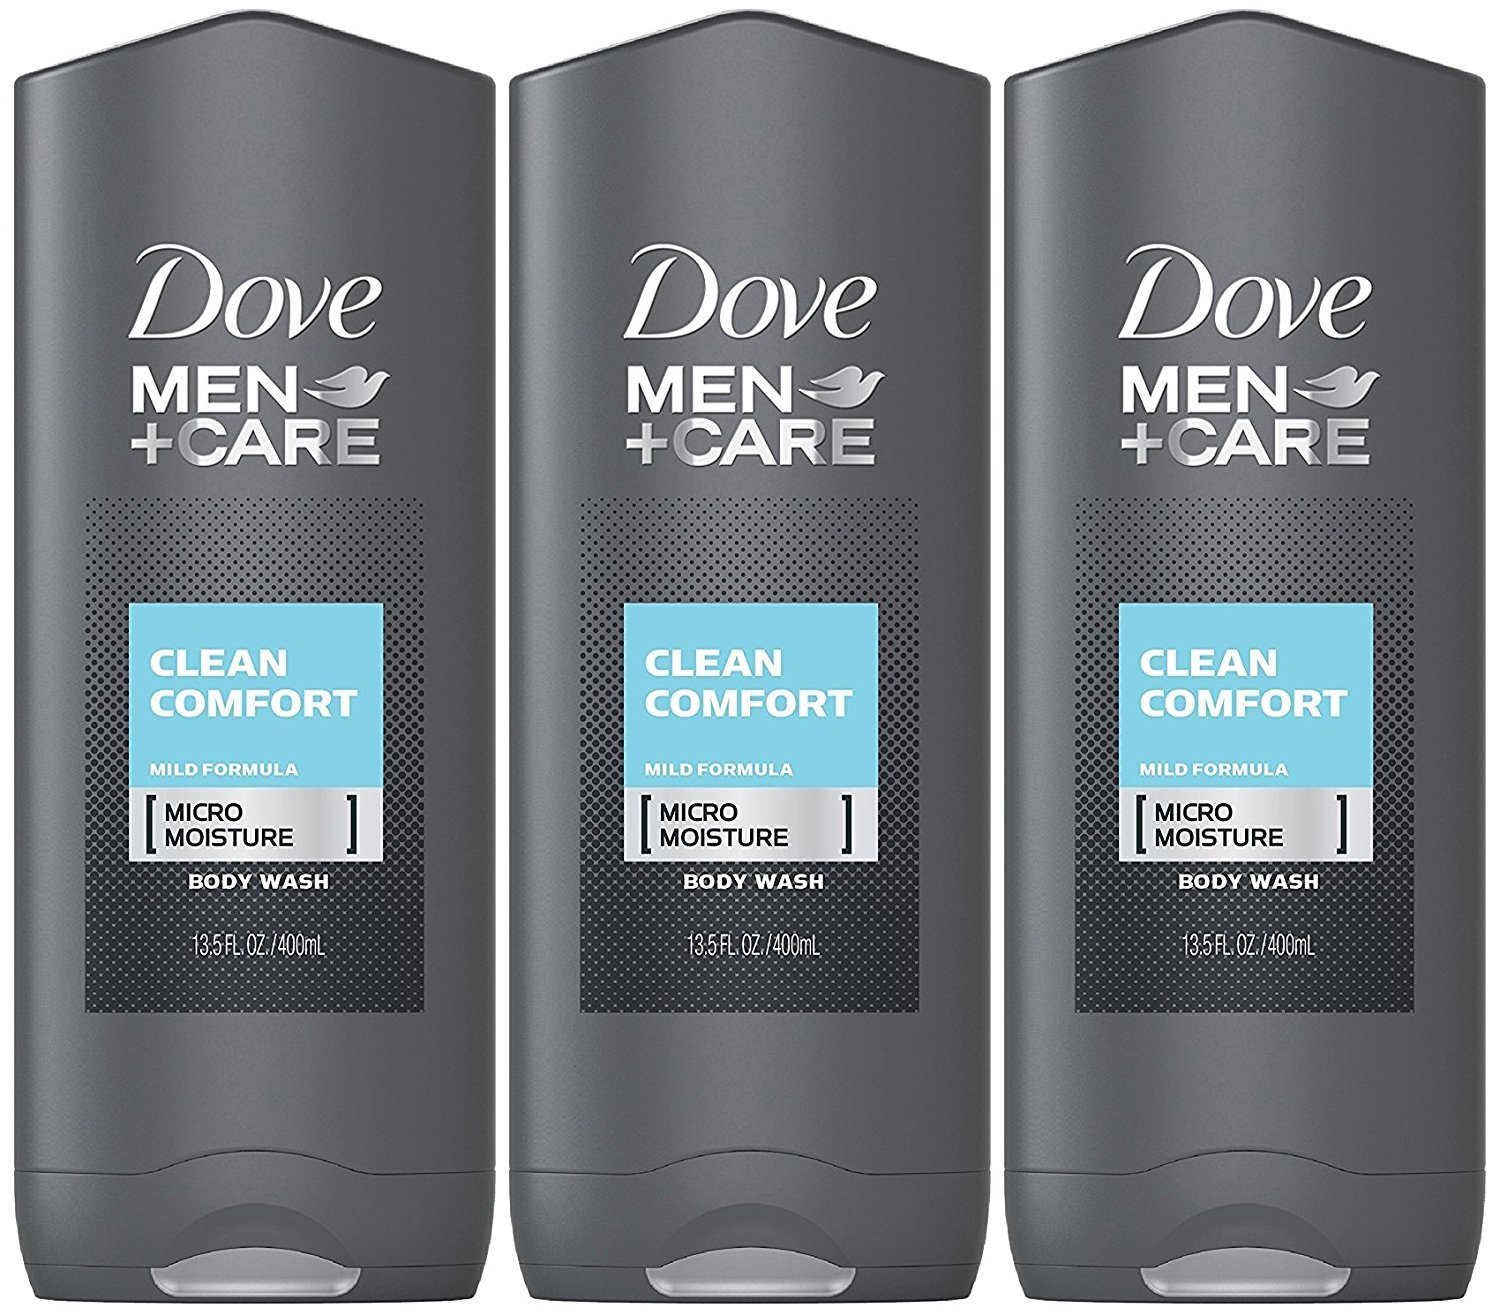 Dove Men + Care Body & Face Wash, Clean Comfort 13.50 oz ( Pack of 3) by Dove